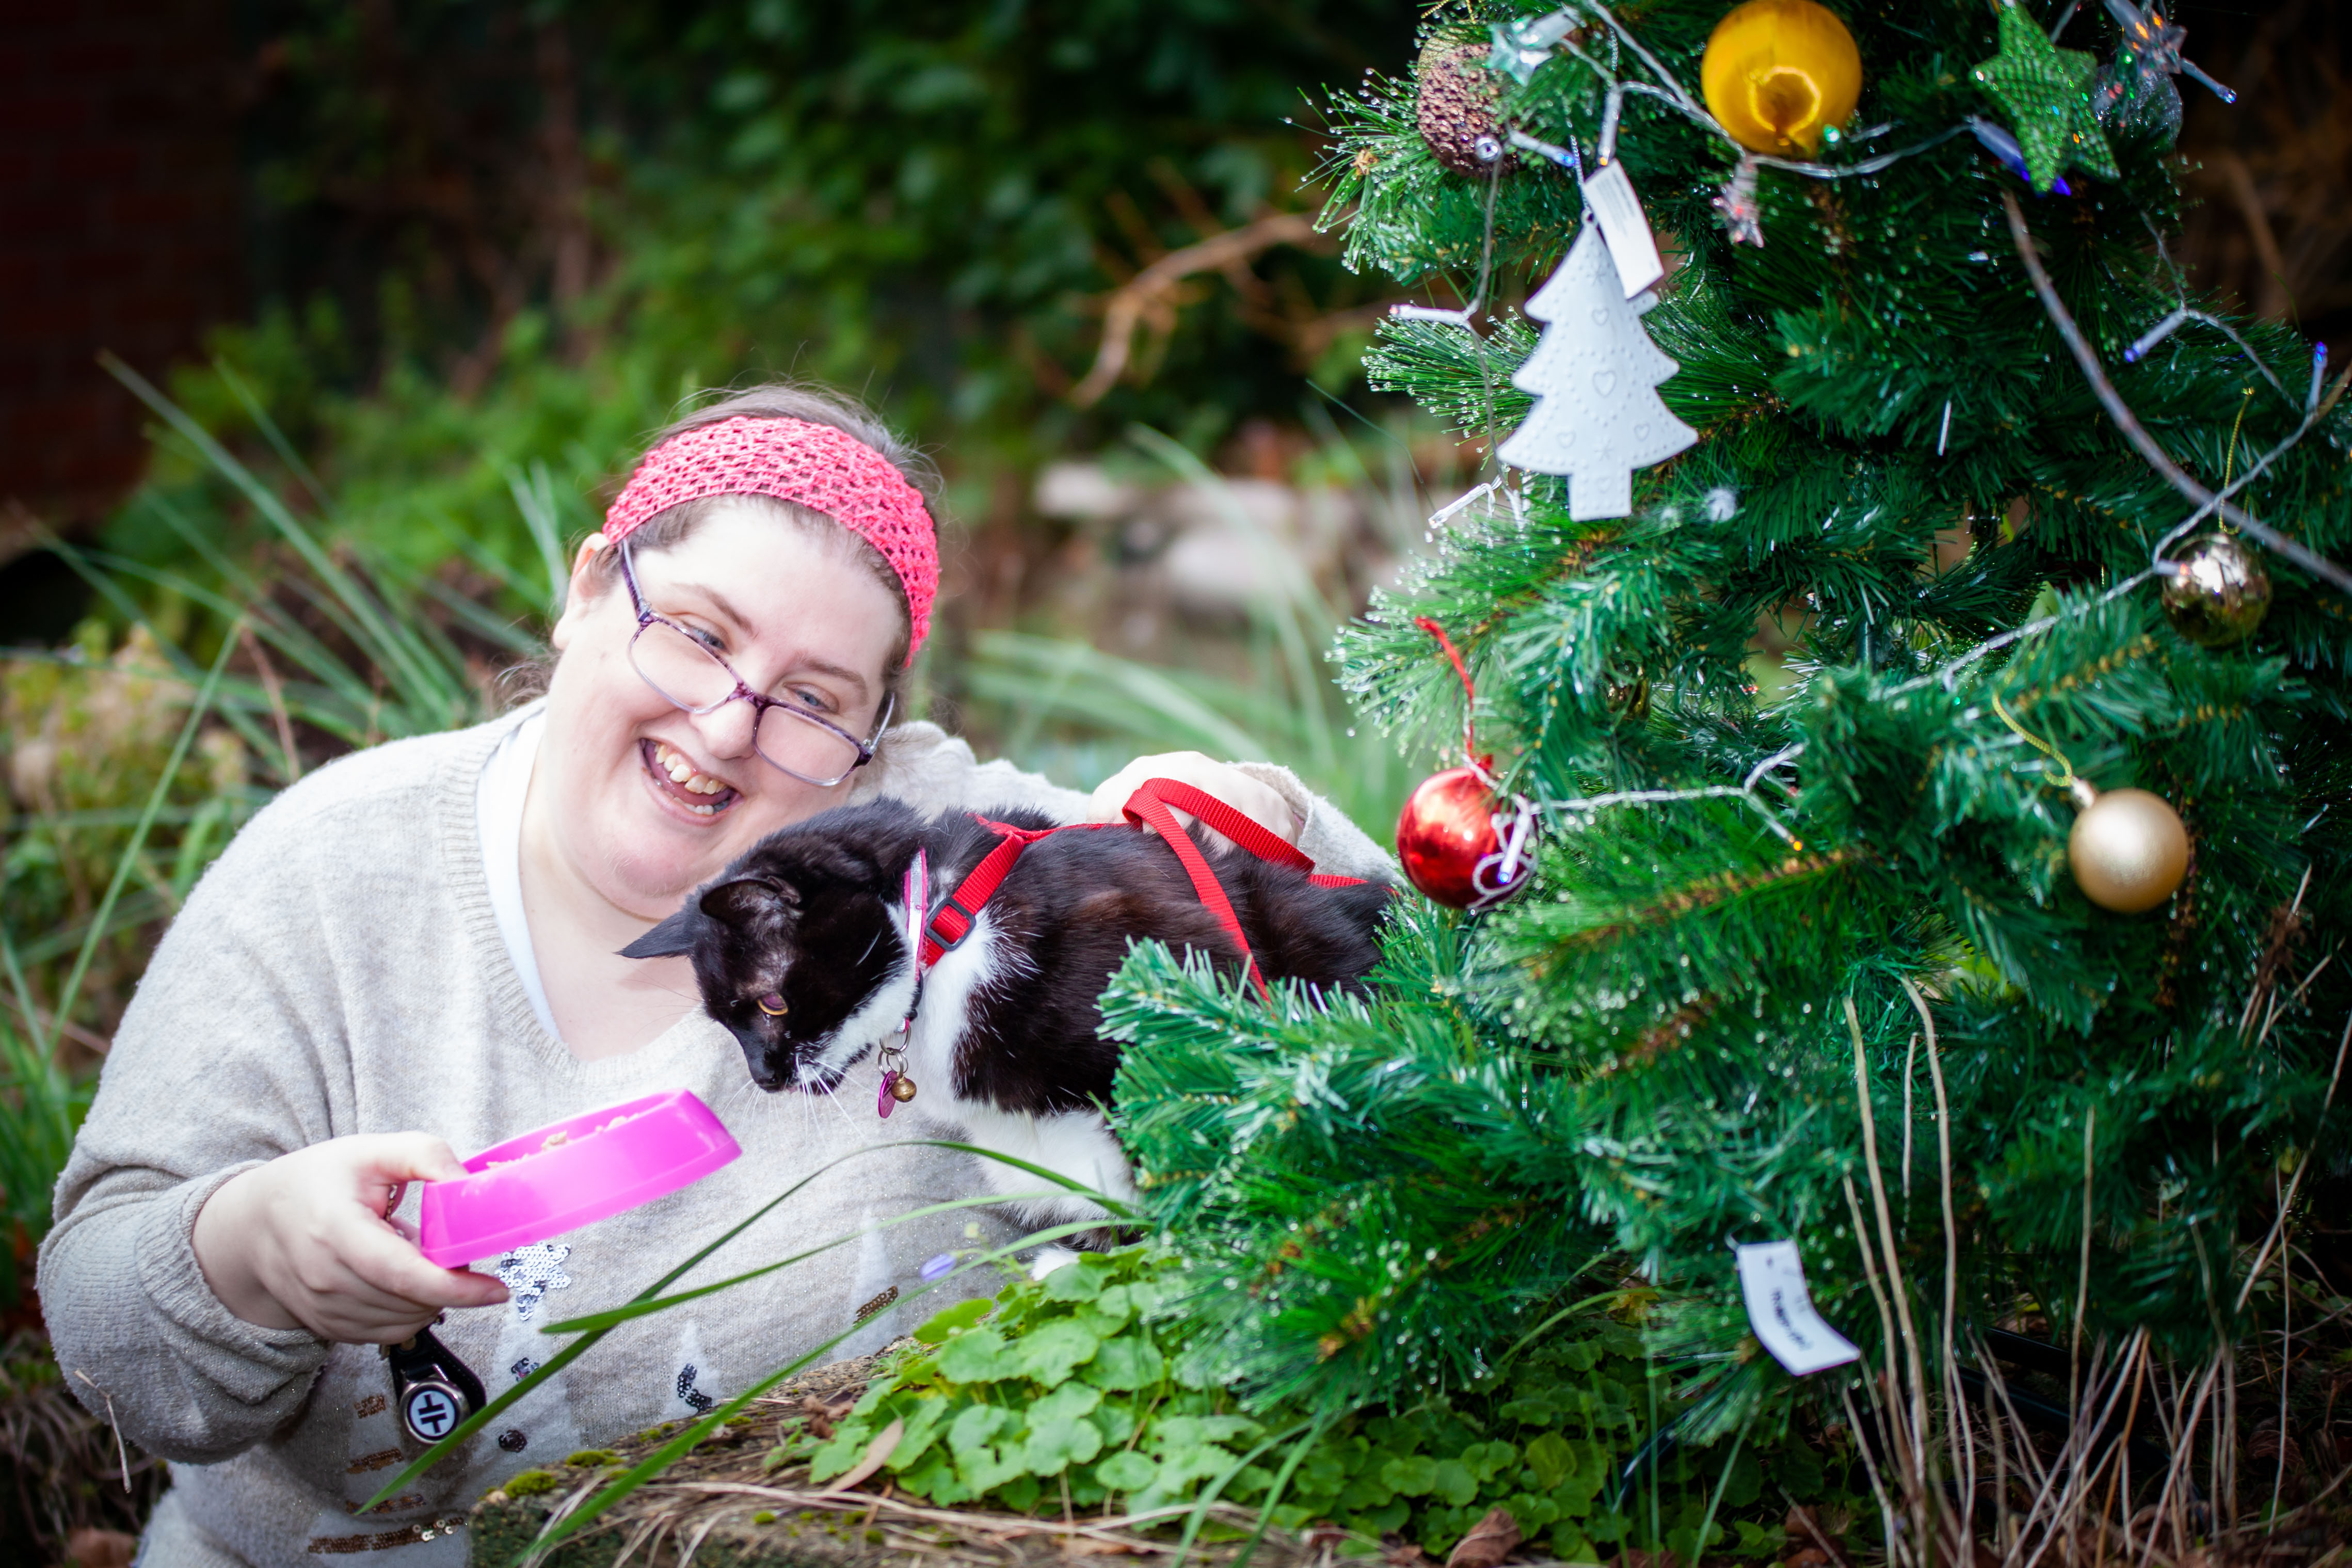 Brandy is BARKS Mascot this Christmas - appeal for foster carers and sponsors